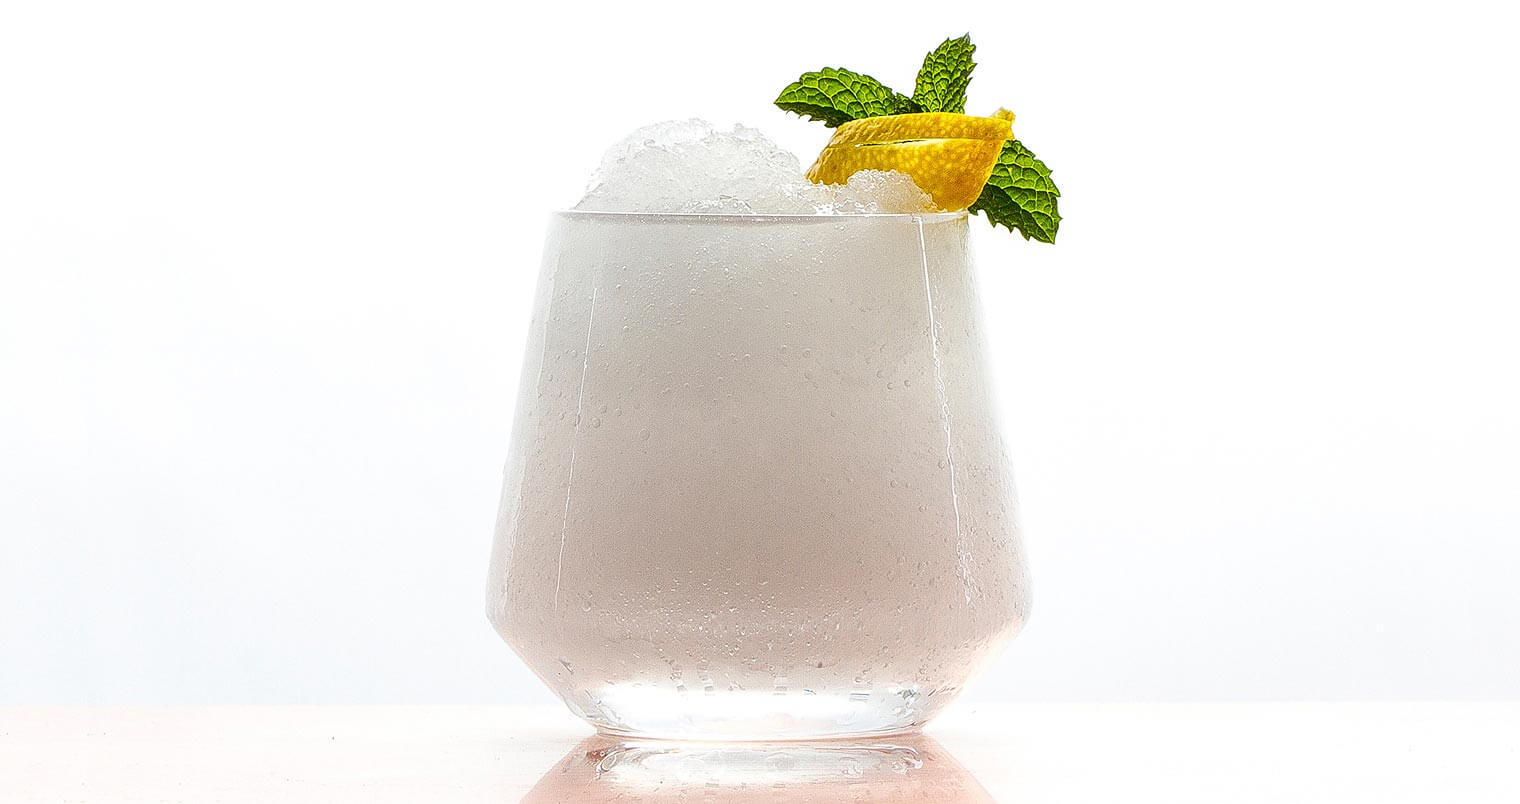 Absinthe Frappe, cocktail with garnish on white, featured image